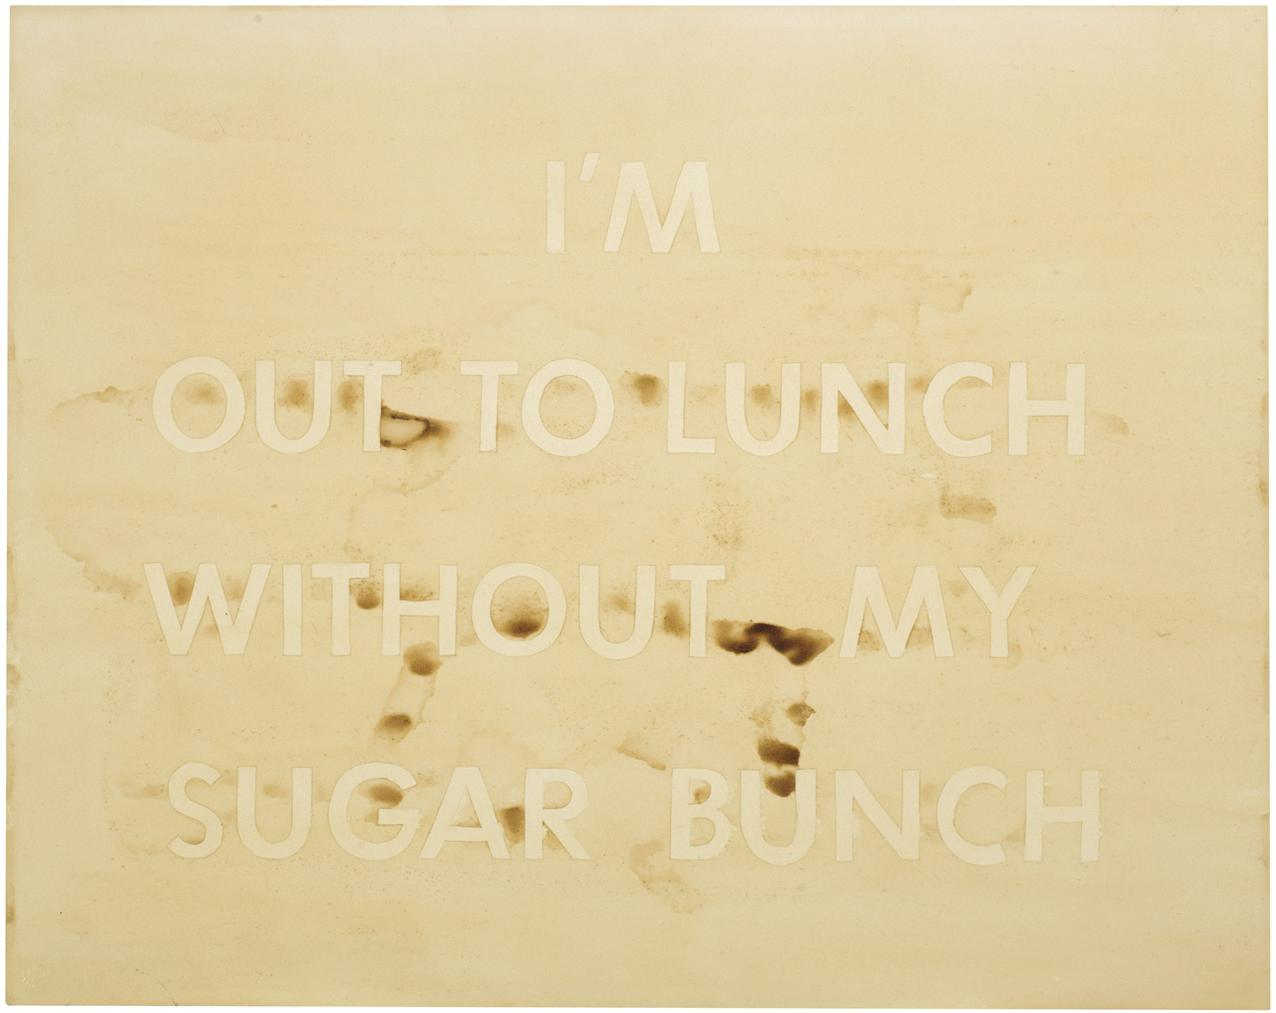 Ed Ruscha-Im Out To Lunch Without My Sugar Bunch-1980